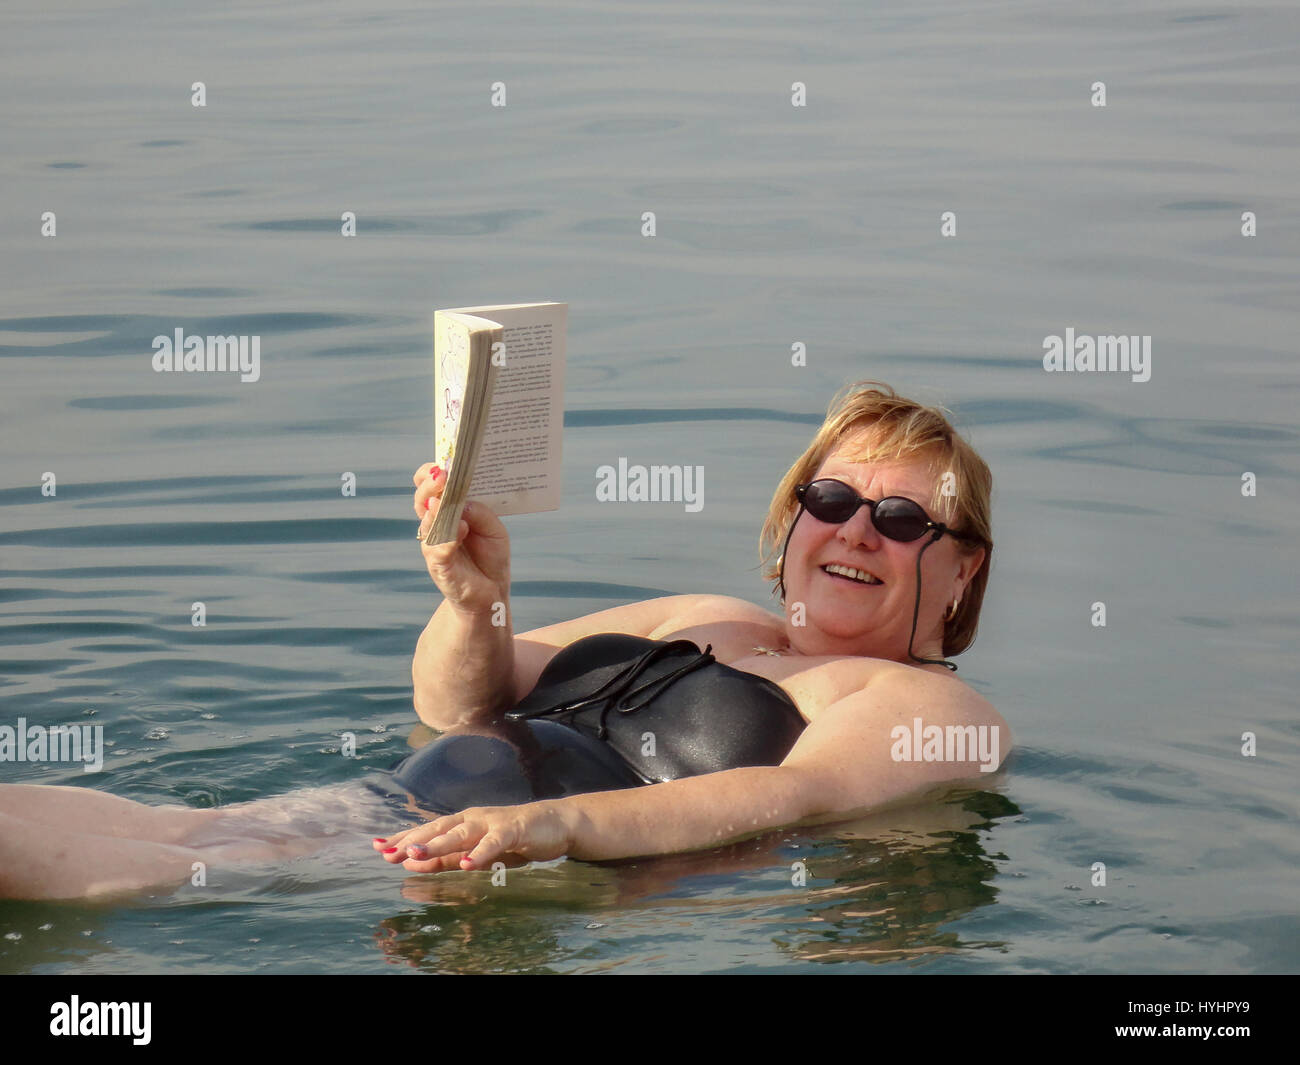 A woman floating in te Dead Sea reading a paperback book. - Stock Image